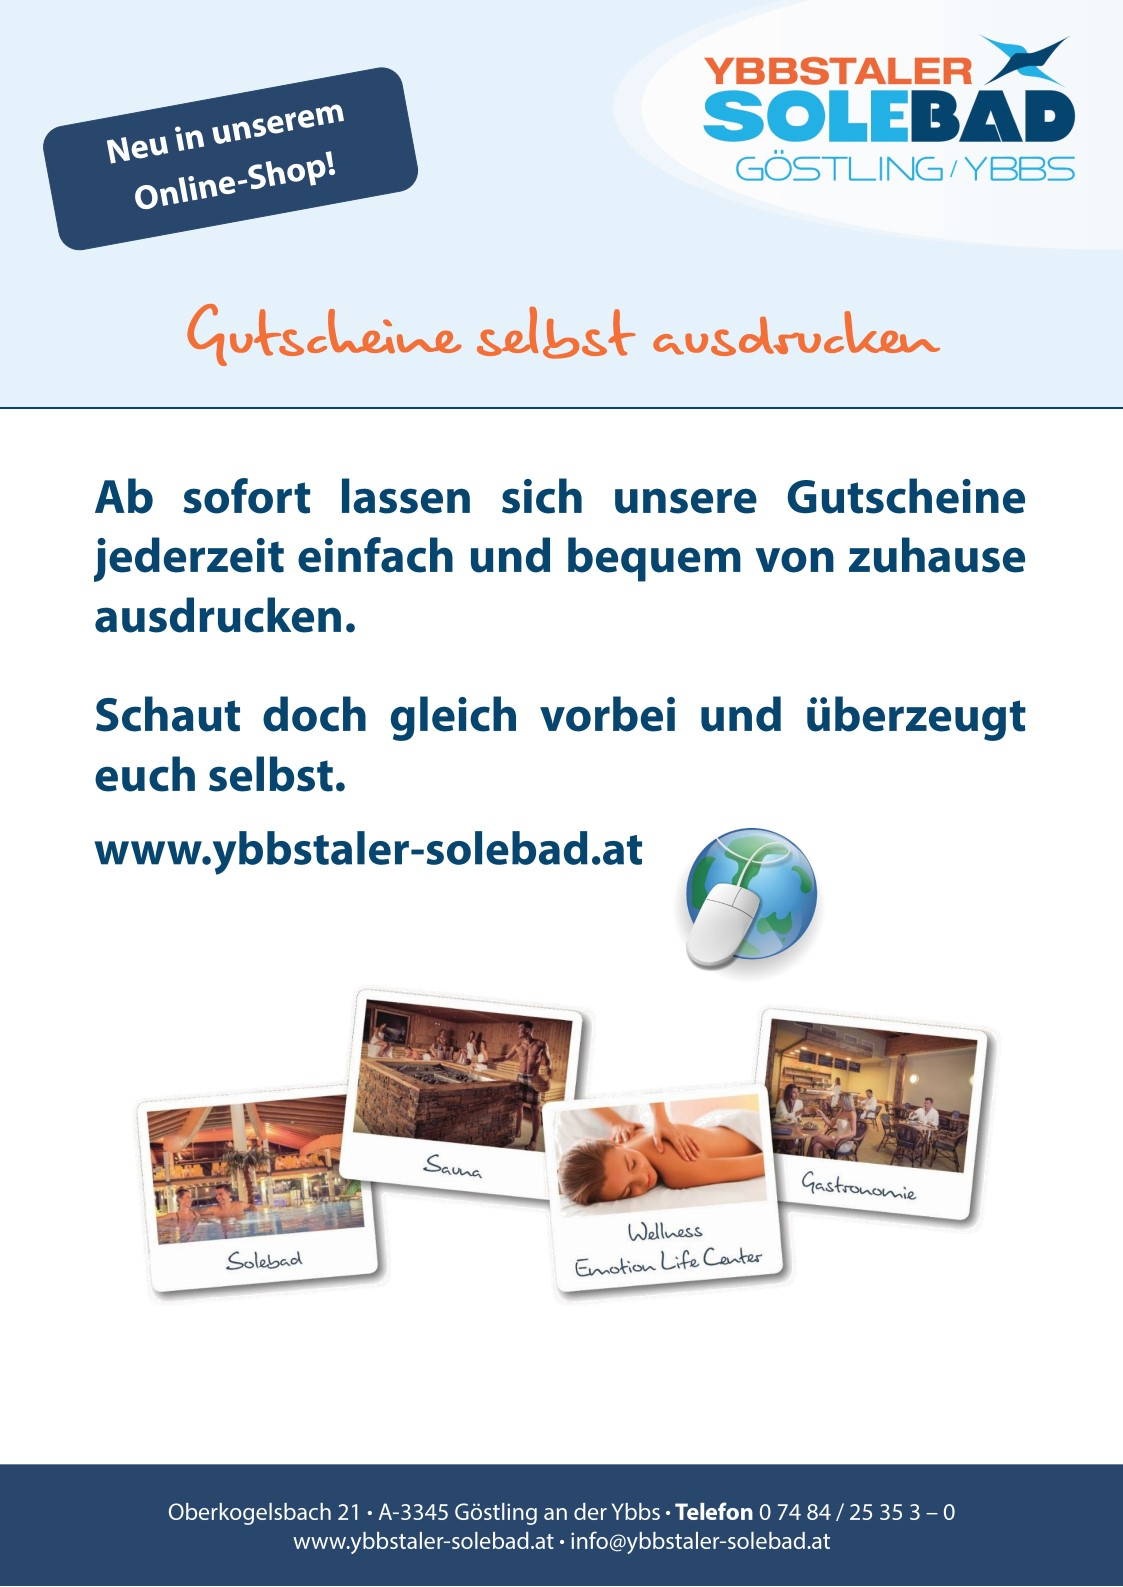 18 09 04 Solebad Marketing Plakat A3 neue Onlineshop-Funktion